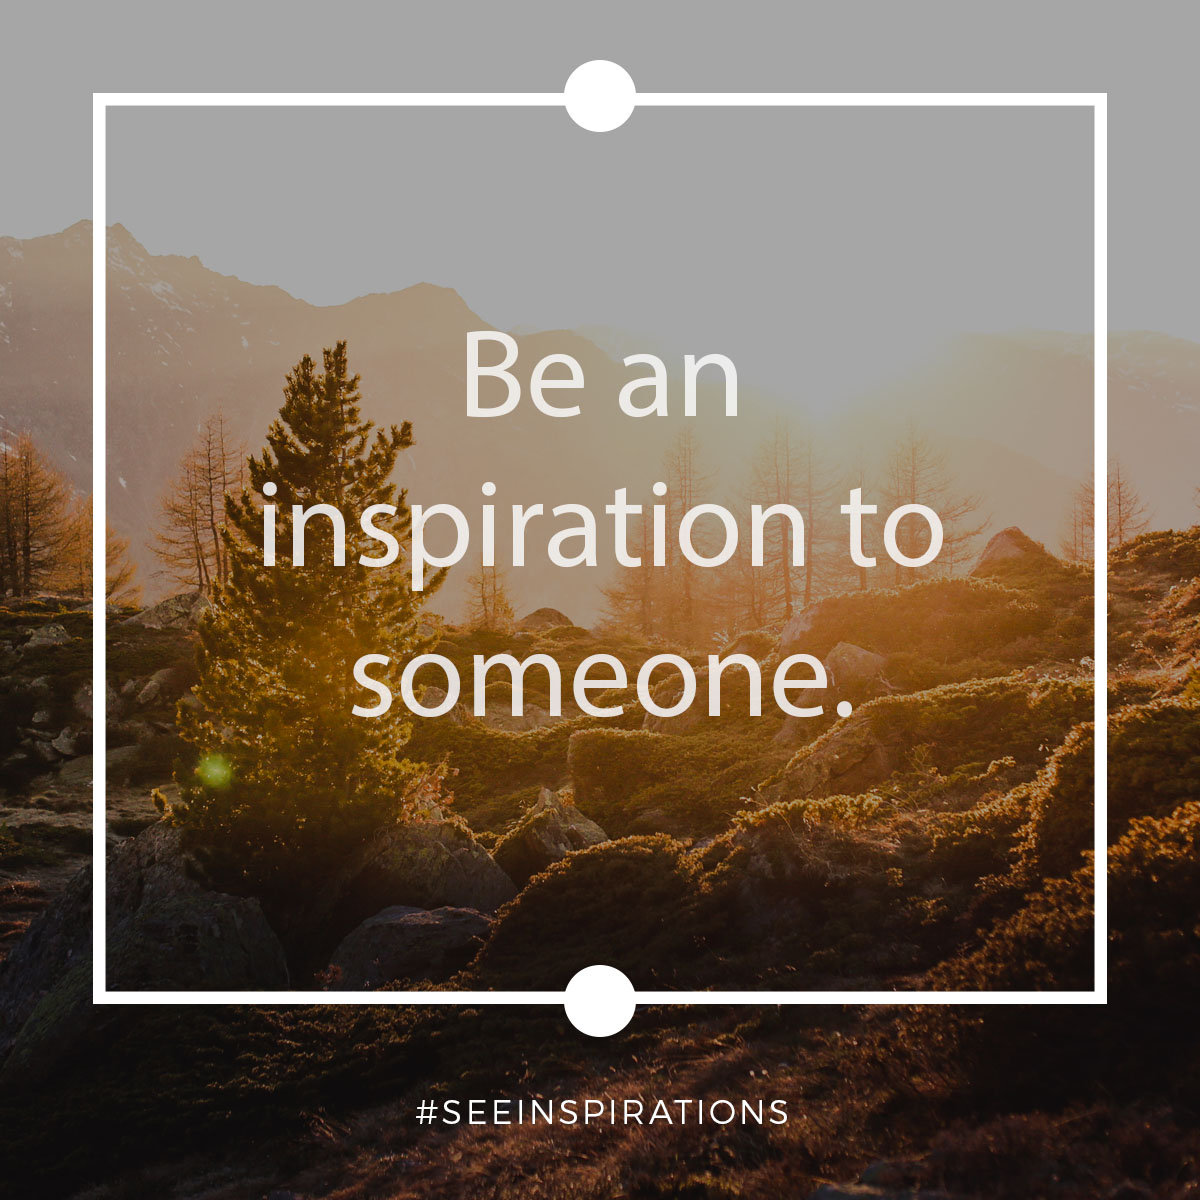 Be an inspiration to someone.